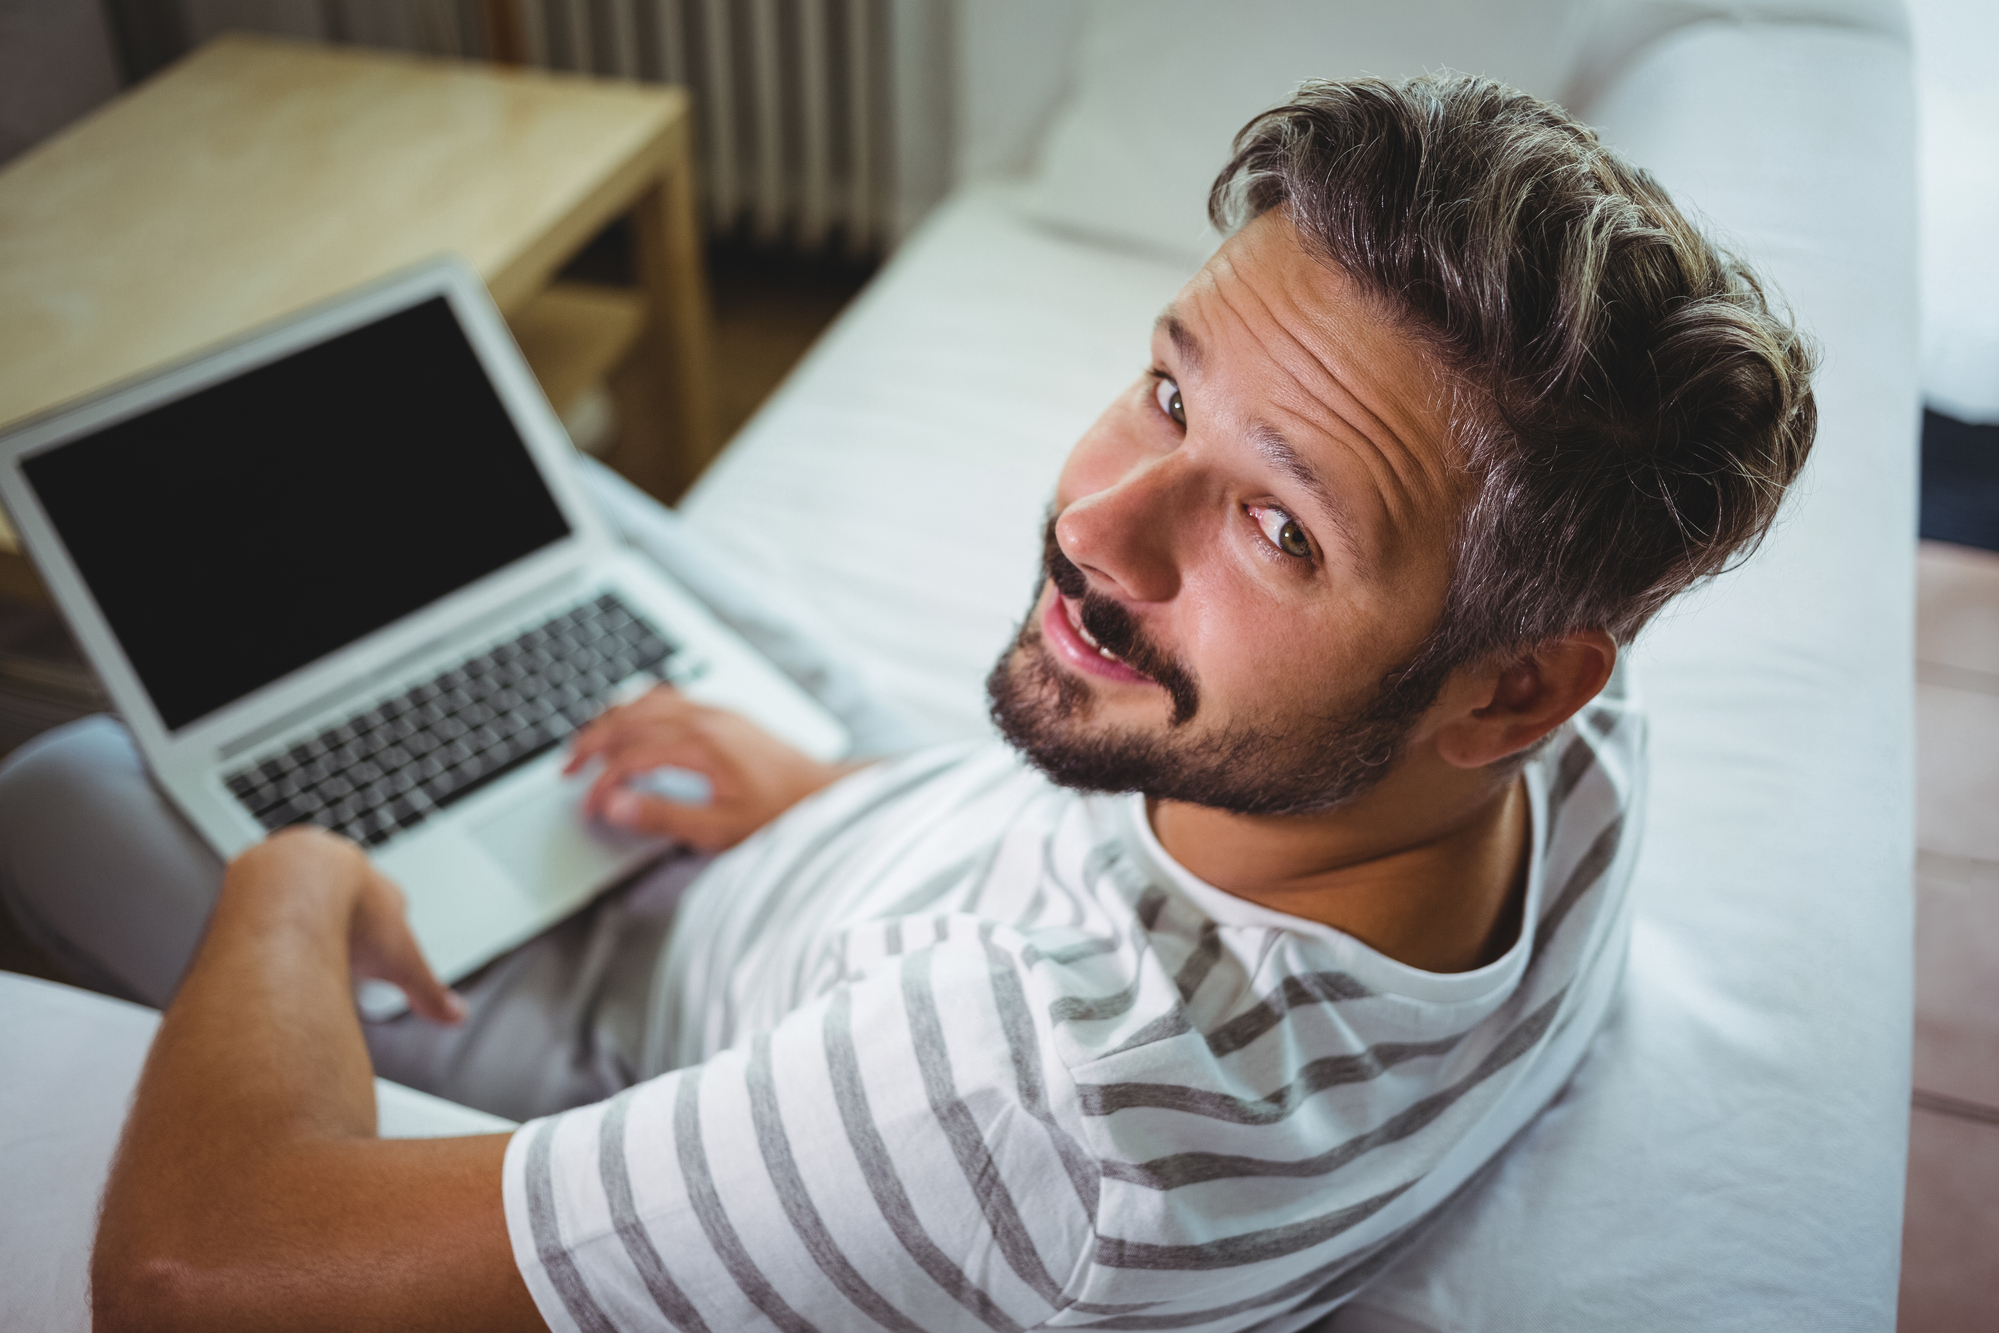 Man using his laptop in living room